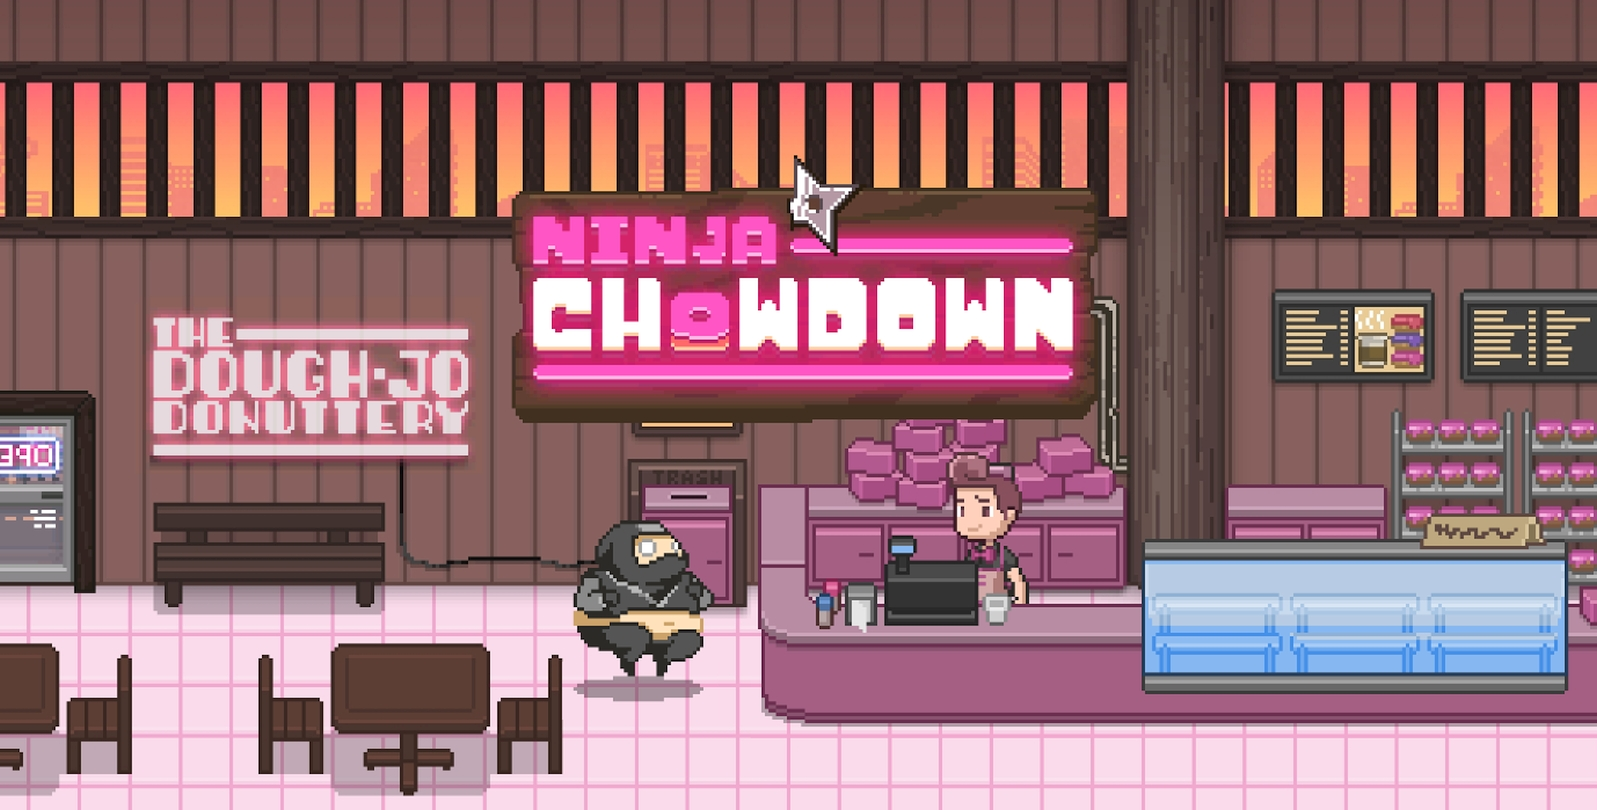 Ninja Chowdown Pixel Runner Game Headed To iOS This Fall